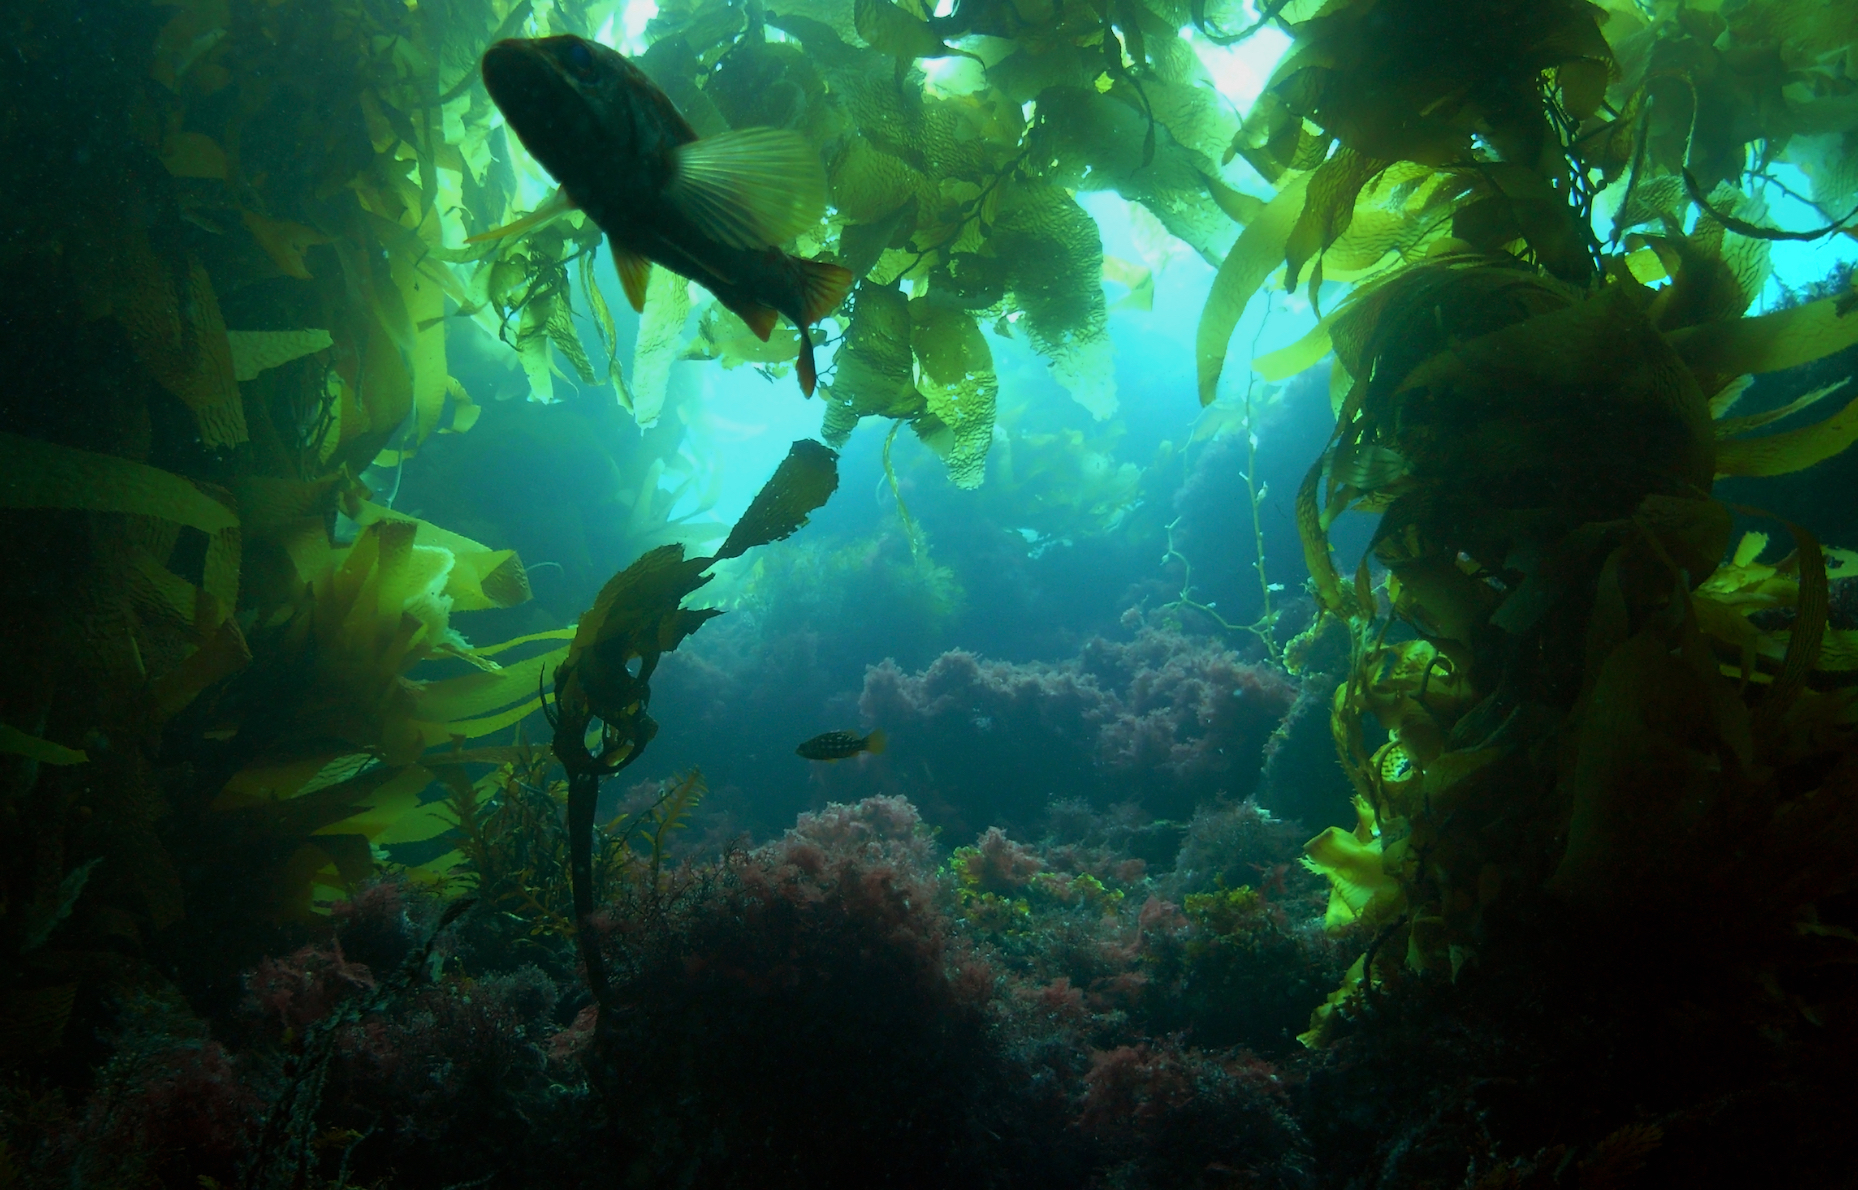 According to new research, ocean acidification will cause a decline in fish diversity, and small, weedy fish species will take over.